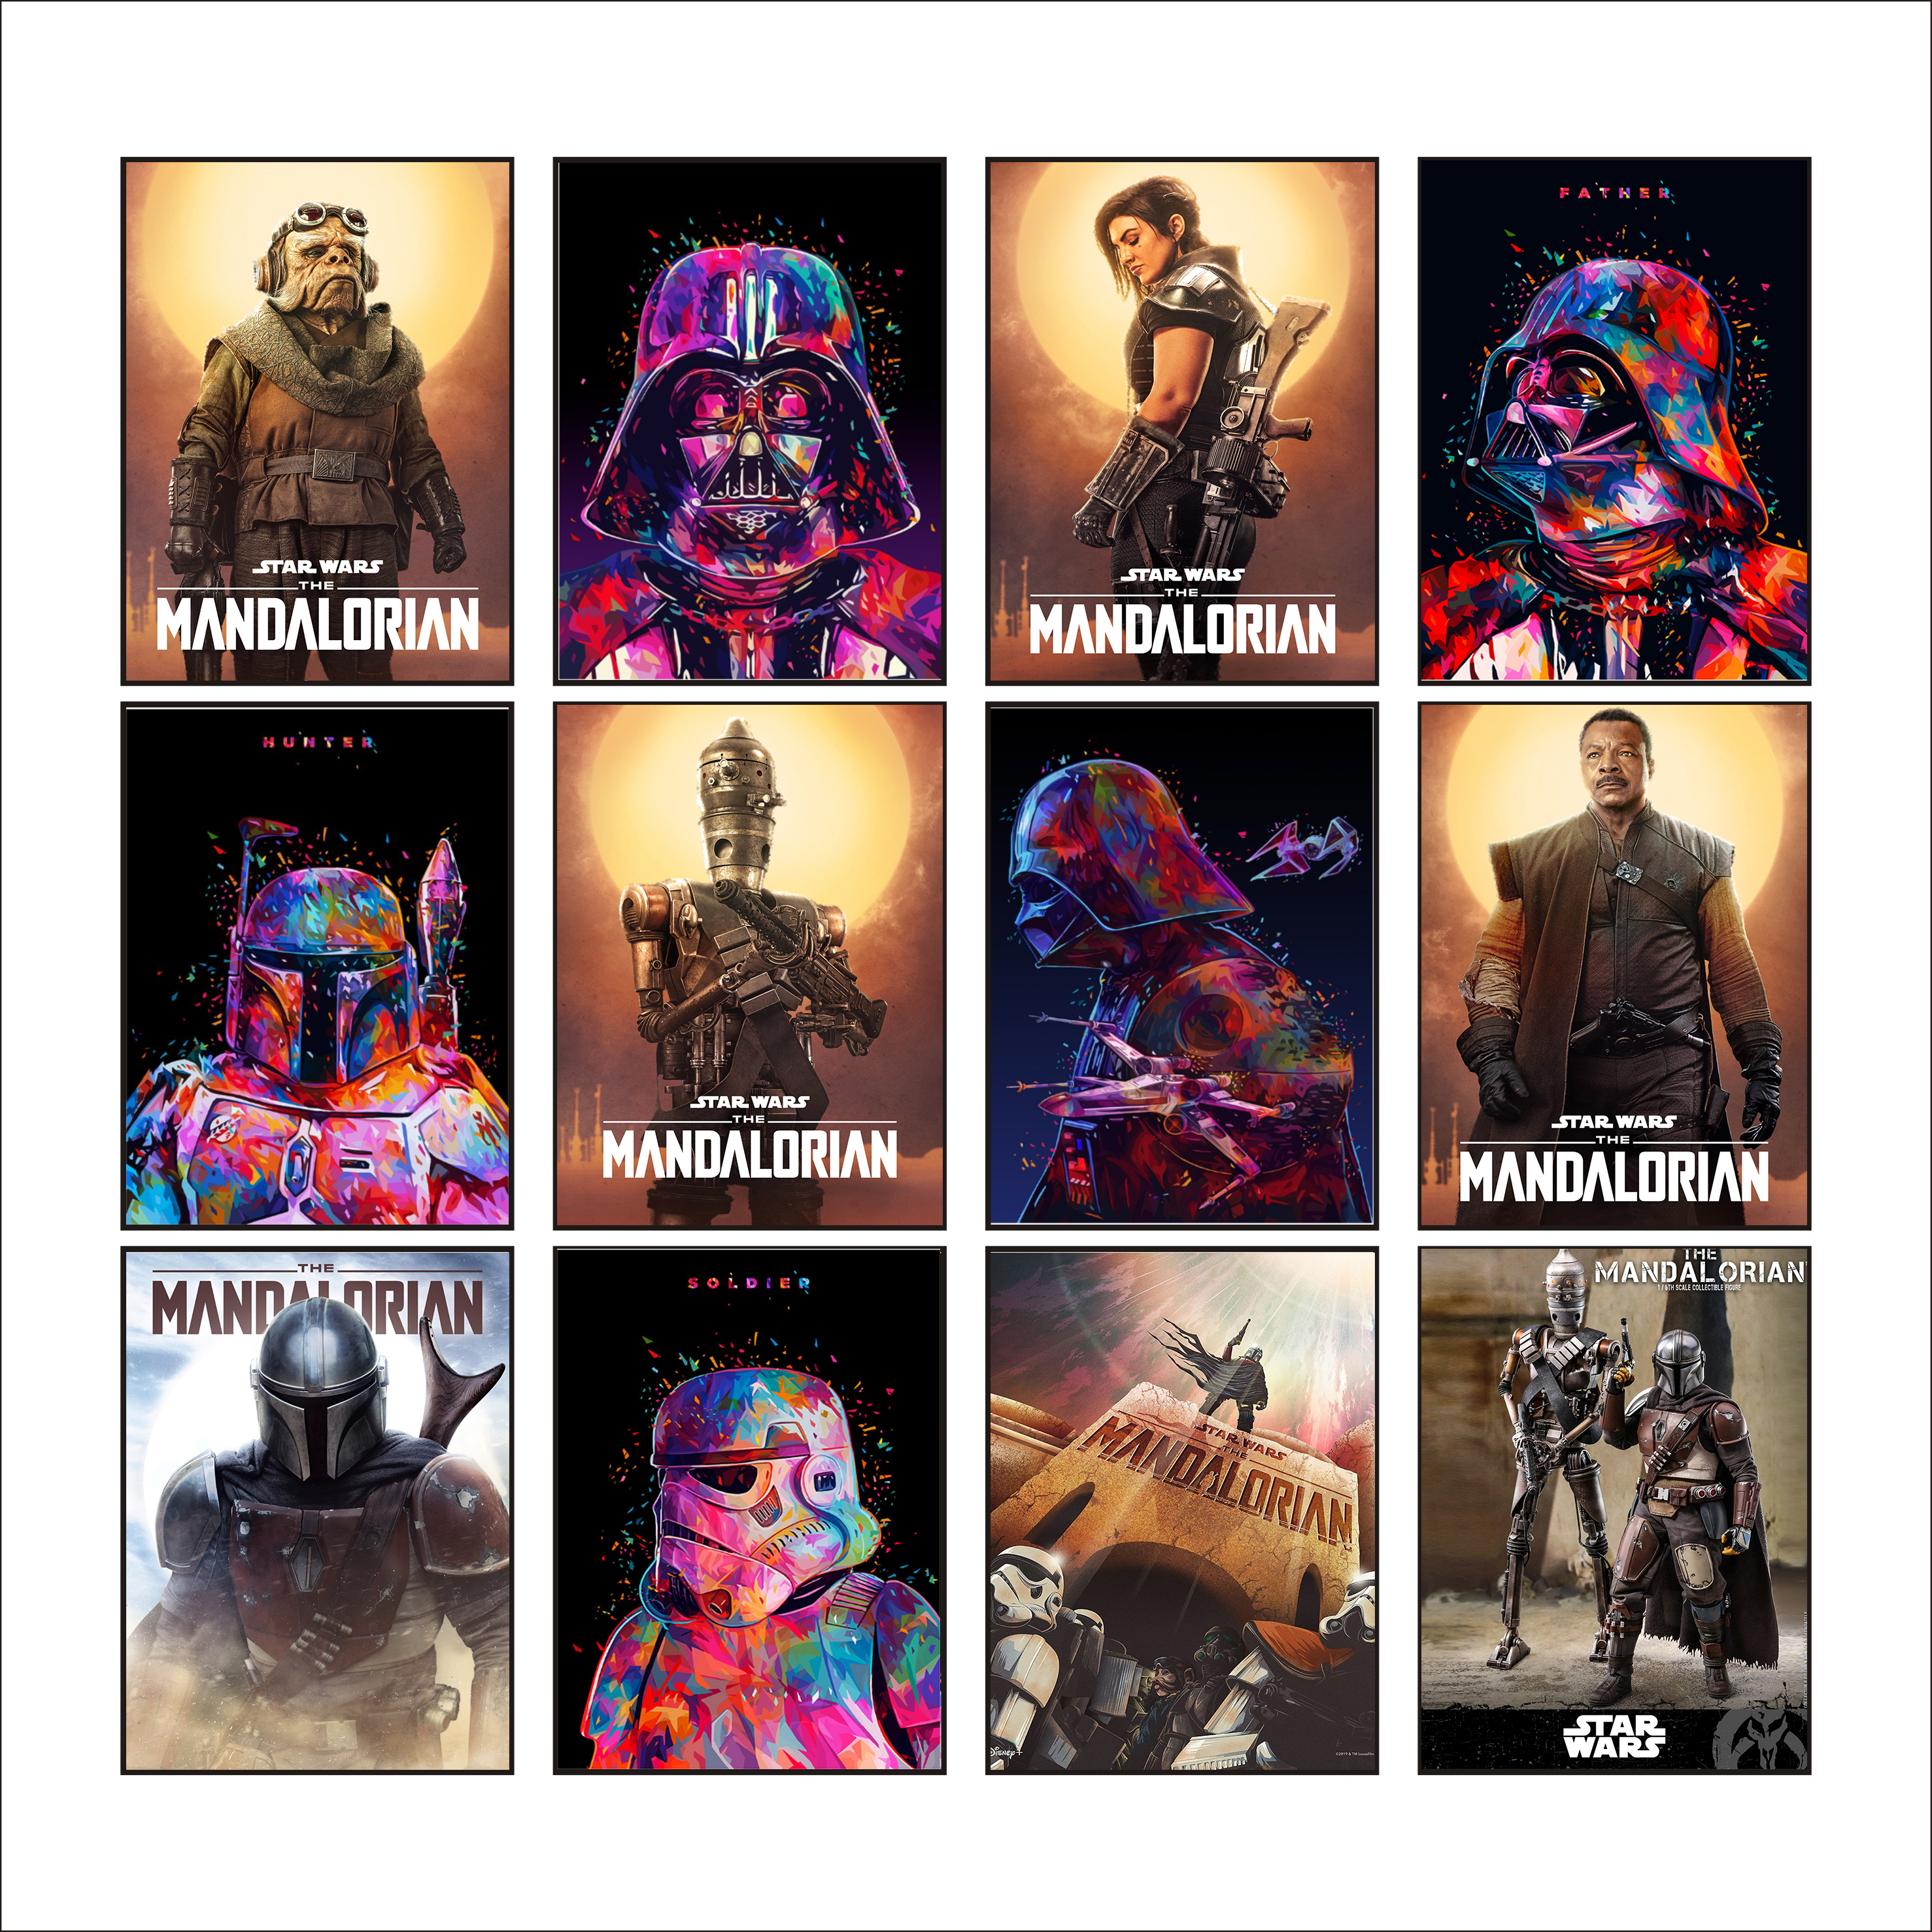 NEW Large Size 107X74CM The Mandalorian Poster Star Wars Watercolor Poster (No Date Mark) Morden Personality Home Decoration image